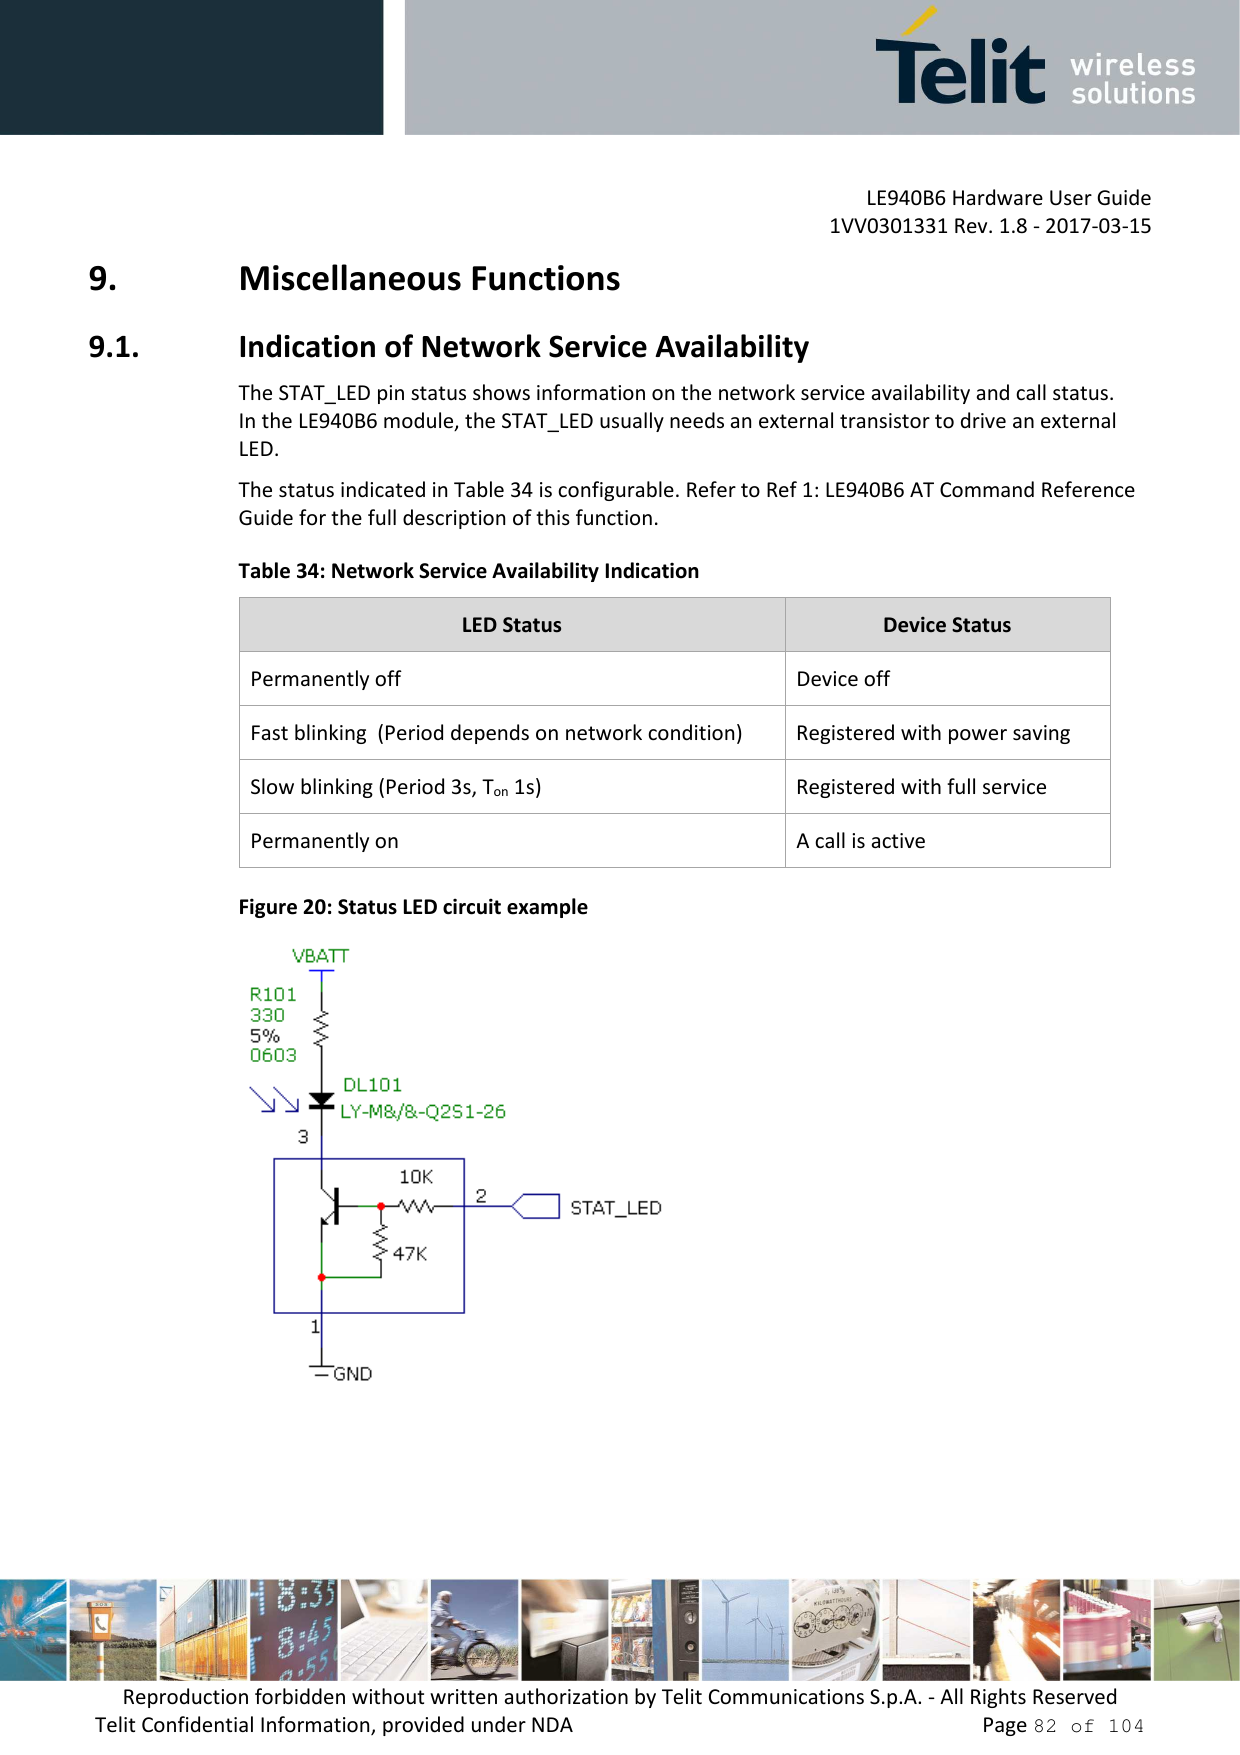 LE940B6 Hardware User Guide     1VV0301331 Rev. 1.8 - 2017-03-15 Reproduction forbidden without written authorization by Telit Communications S.p.A. - All Rights Reserved Telit Confidential Information, provided under NDA                 Page 82 of 104 9. Miscellaneous Functions 9.1. Indication of Network Service Availability The STAT_LED pin status shows information on the network service availability and call status. In the LE940B6 module, the STAT_LED usually needs an external transistor to drive an external LED.  The status indicated in Table 34 is configurable. Refer to Ref 1: LE940B6 AT Command Reference Guide for the full description of this function. Table 34: Network Service Availability Indication LED Status  Device Status Permanently off  Device off Fast blinking  (Period depends on network condition)  Registered with power saving Slow blinking (Period 3s, Ton 1s)  Registered with full service Permanently on  A call is active Figure 20: Status LED circuit example